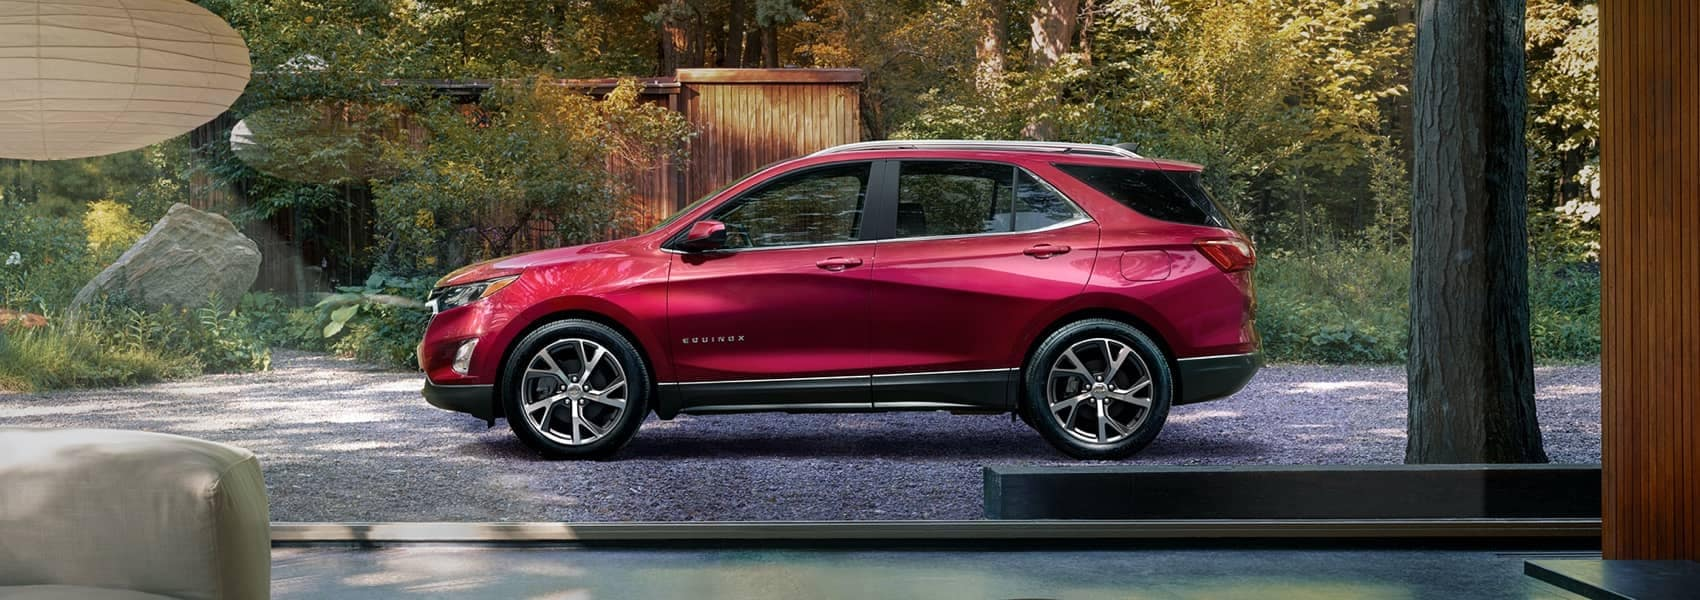 2021 Red Chevy Equinox Parked